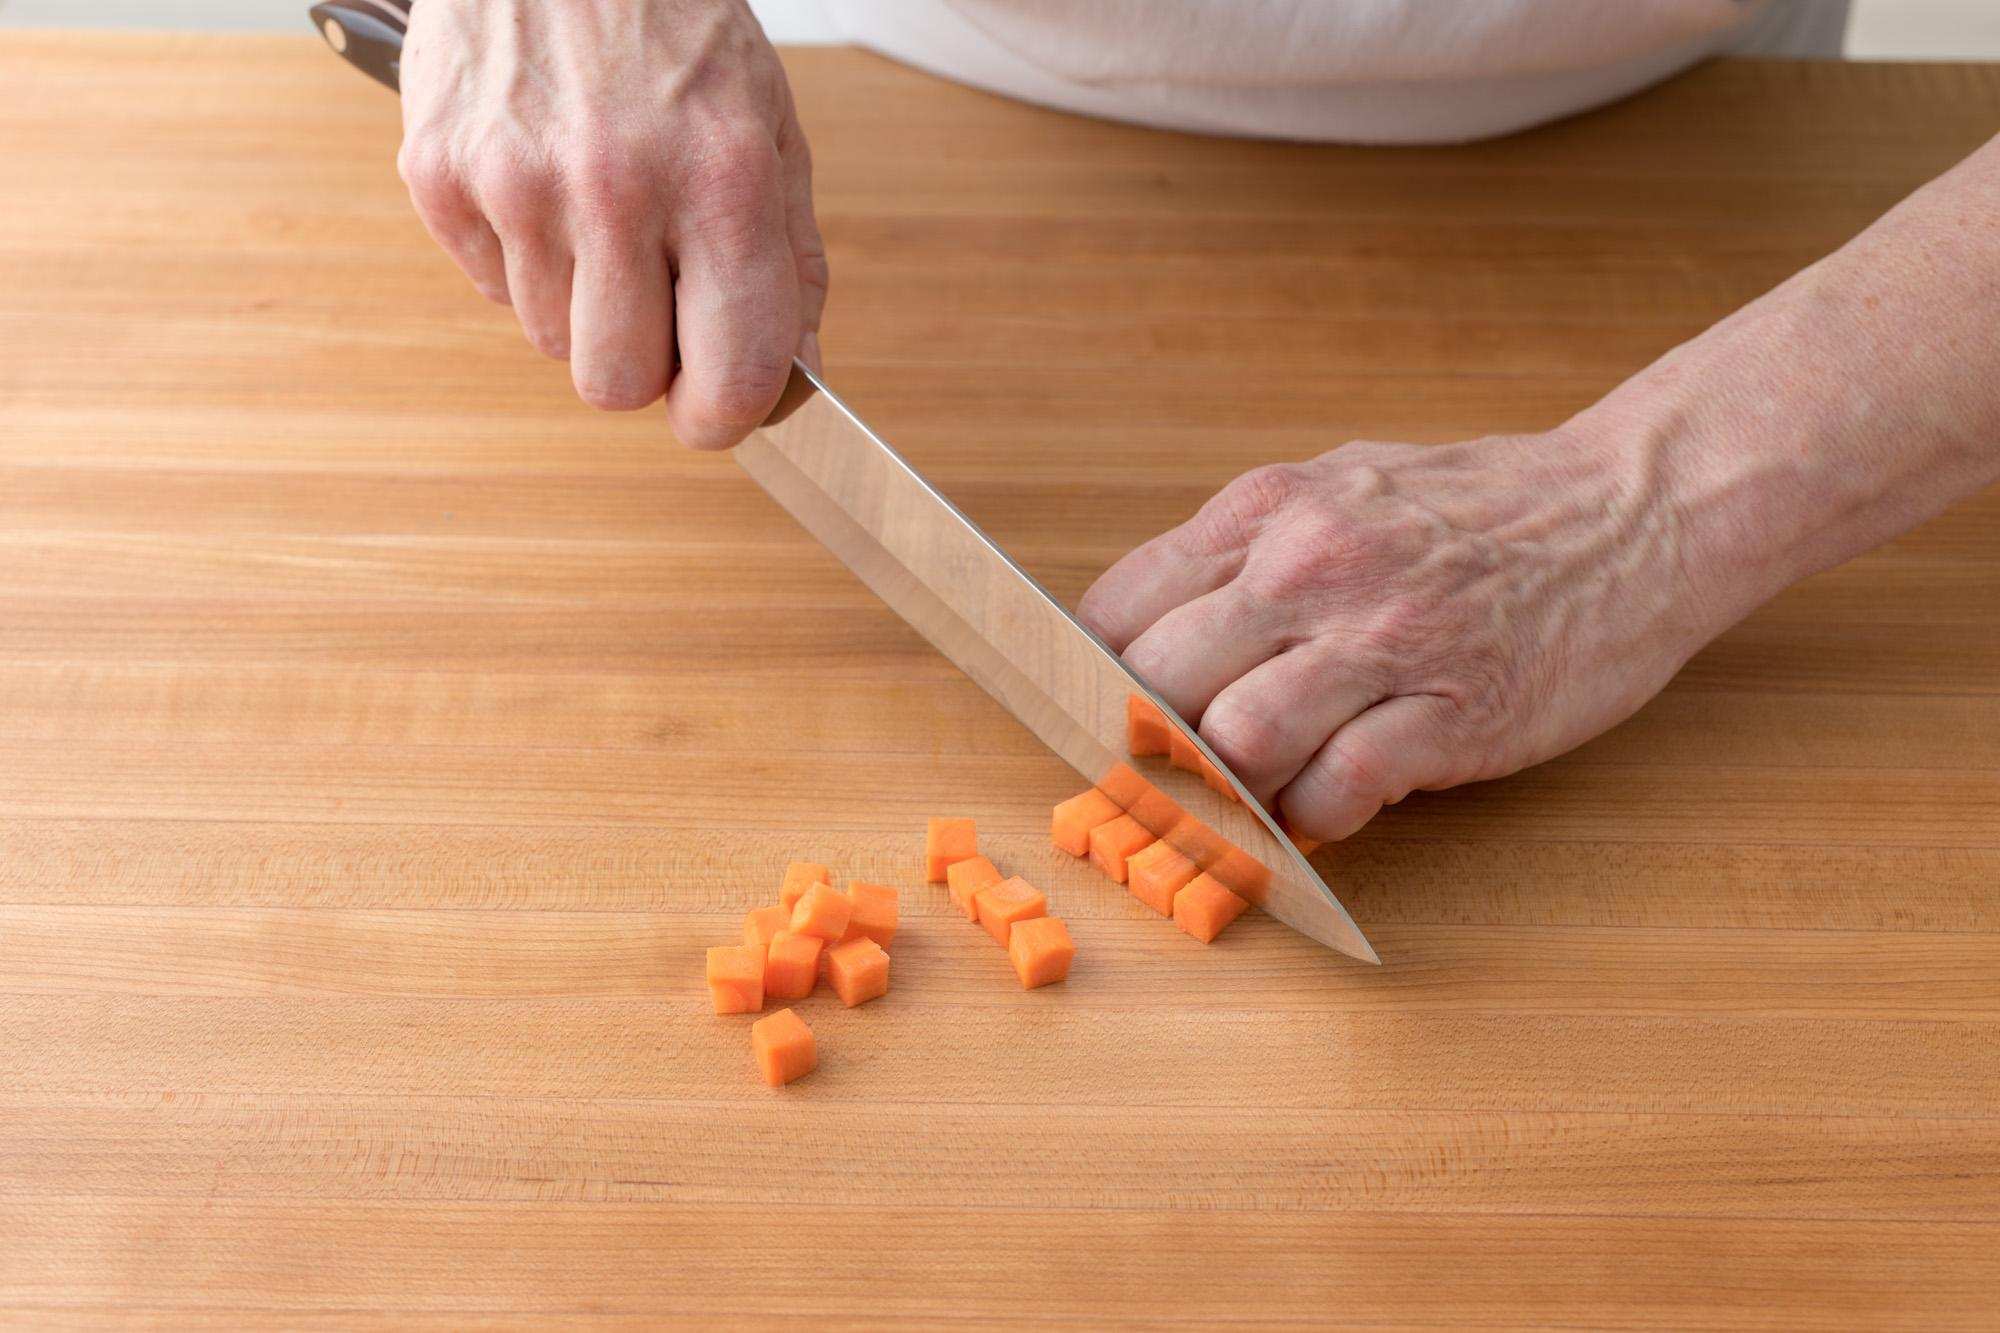 A Petite Chef being used to dice carrots.